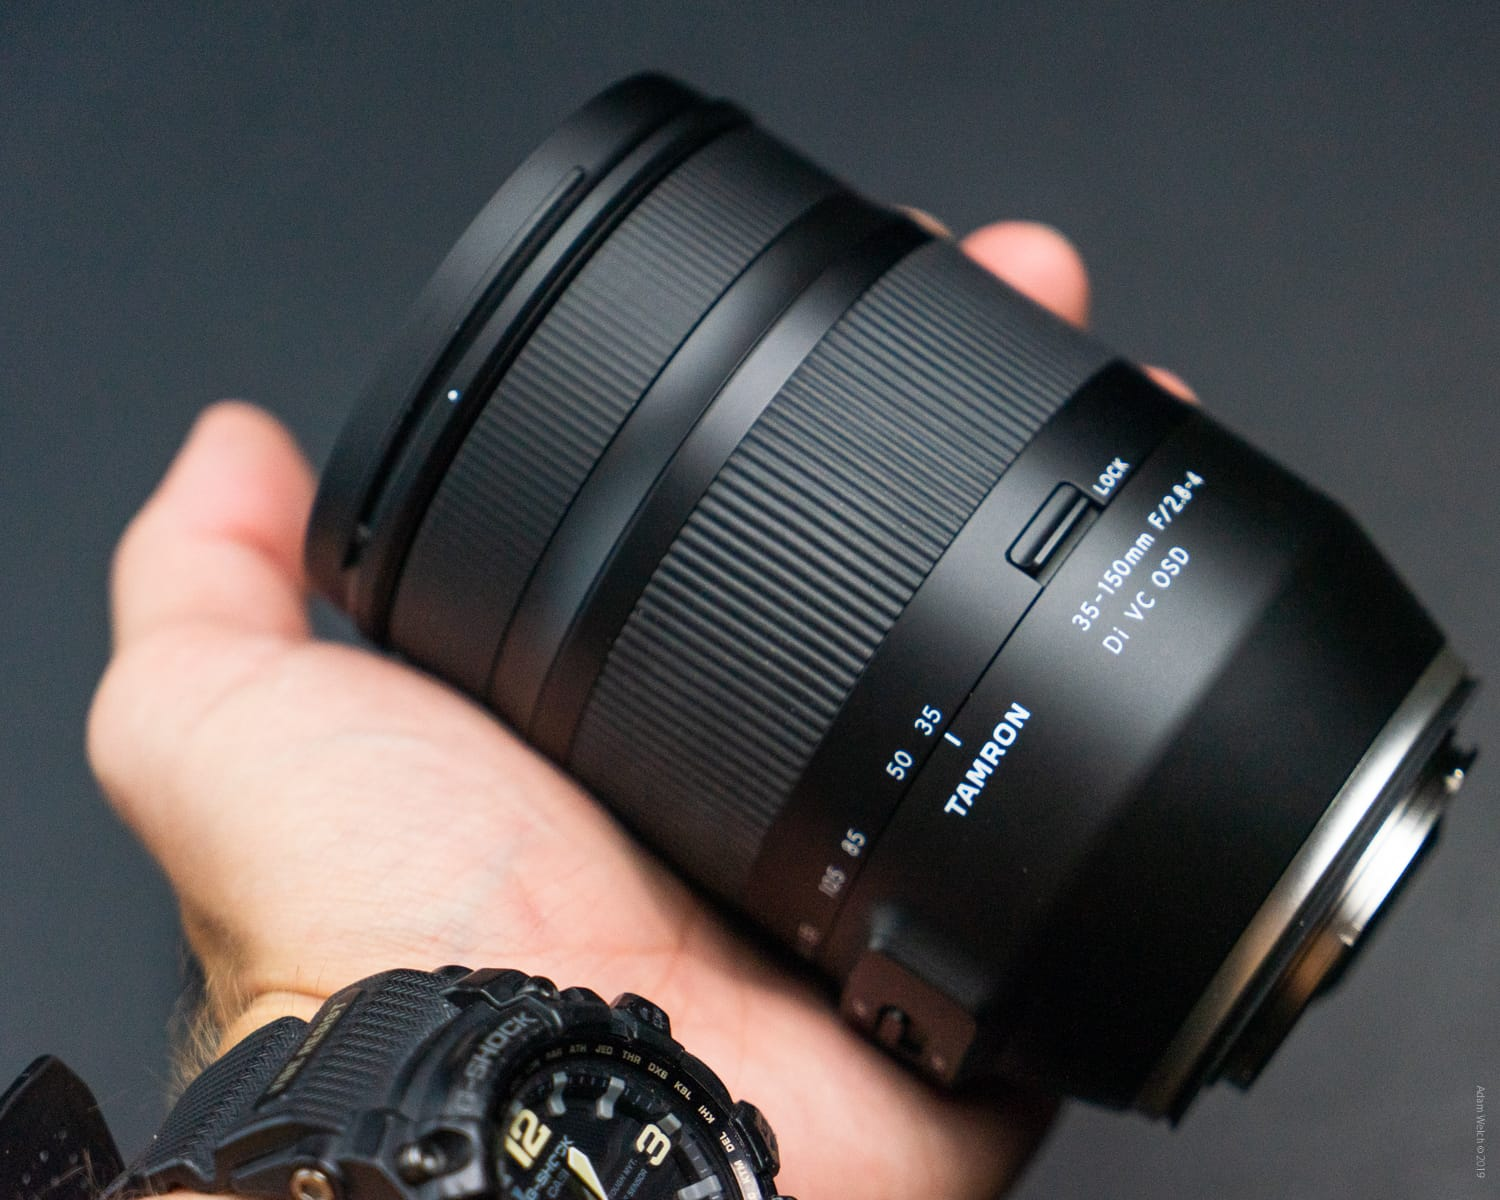 Hands-On Review of the Tamron 35-150mm f/2.8-4 Lens